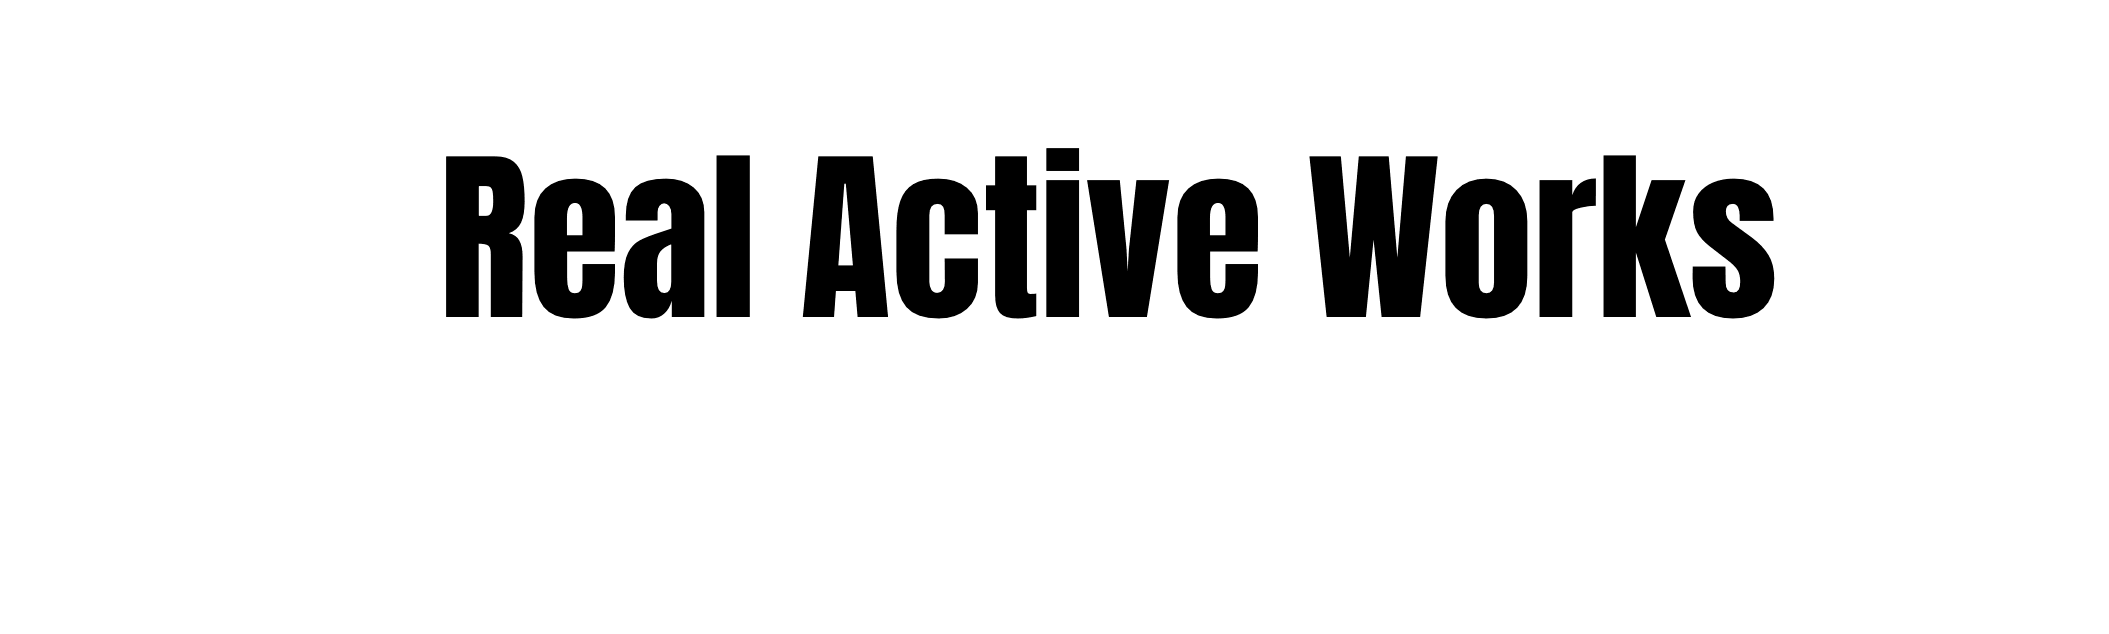 Real Active Works